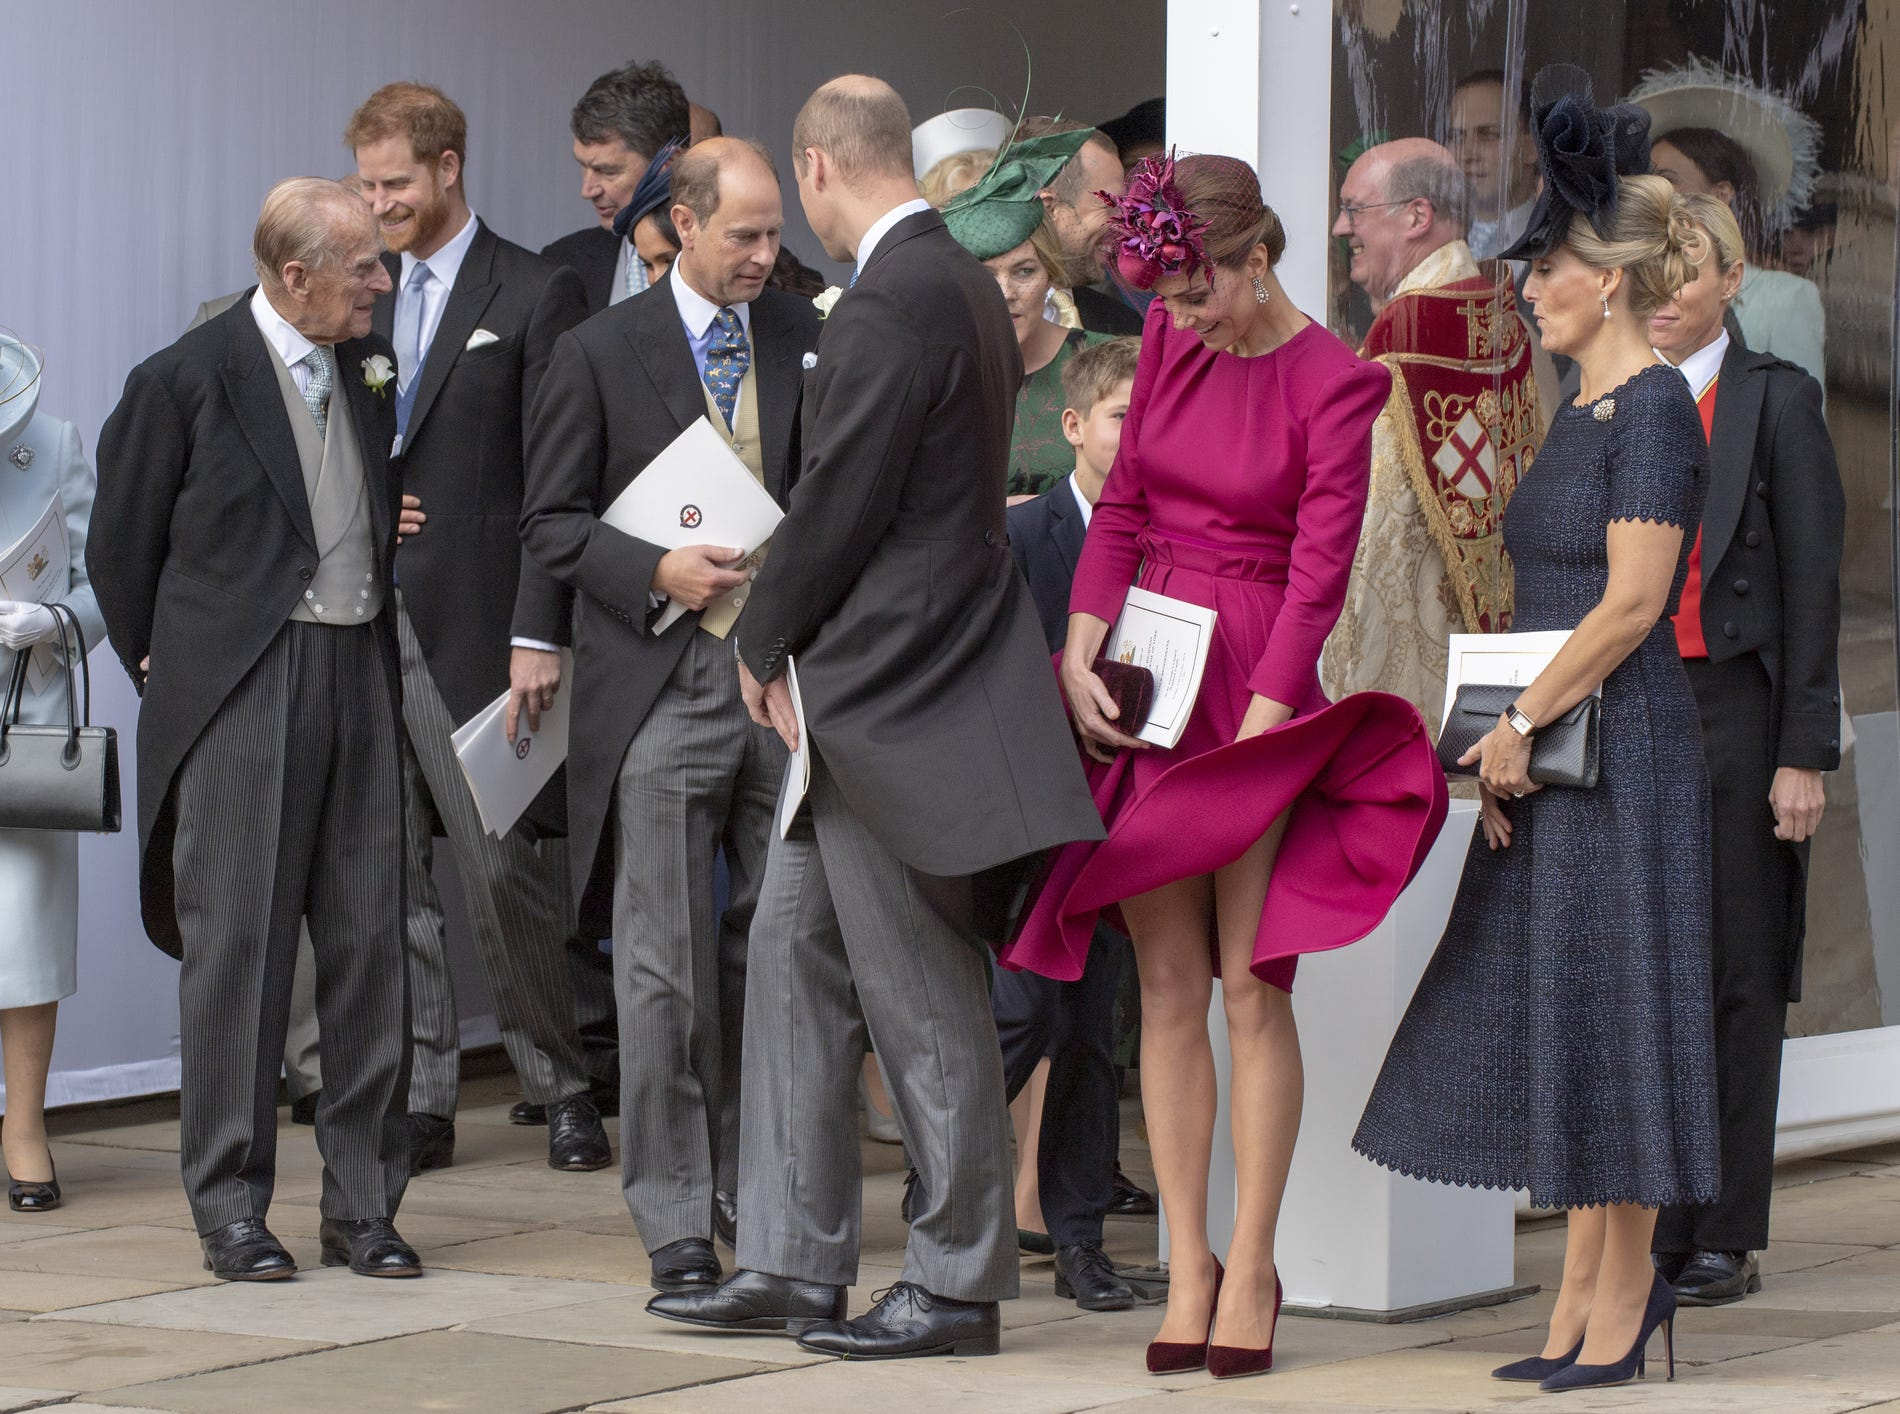 Hold that dress down Kate! Queen Elizabeth II, Prince Philip, Duke of Edinburgh , Prince Harry, Duke of Sussex, Prince Edward, Earl of Wessex, Prince William, Duke of Cambridge, Catherine, Duchess of Cambridge and Sophie, Countess of Wessex attend the wedding of Princess Eugenie of York to Jack Brooksbank, Friday.